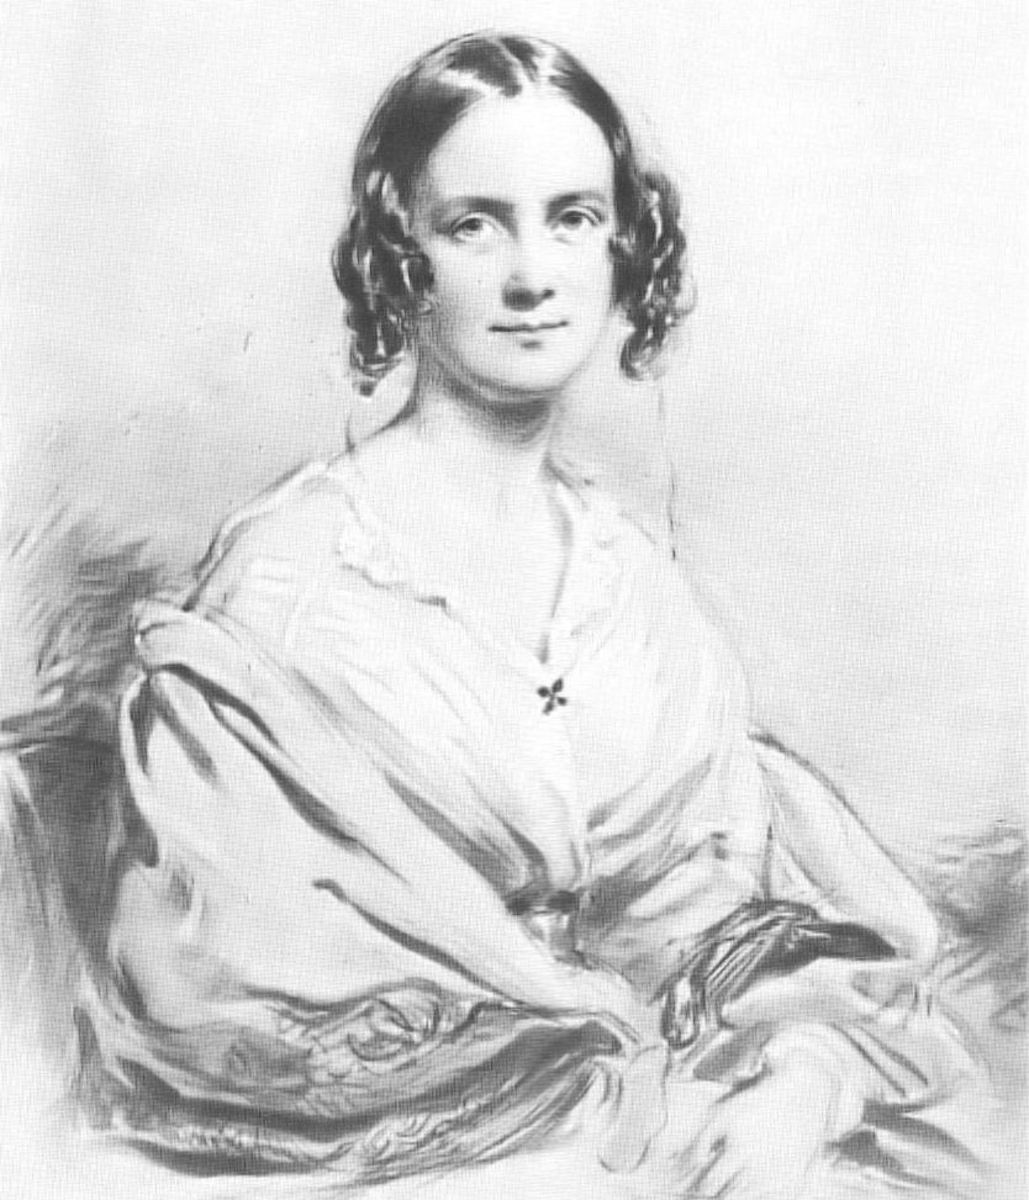 Charles Darwin Wife Emma Photo